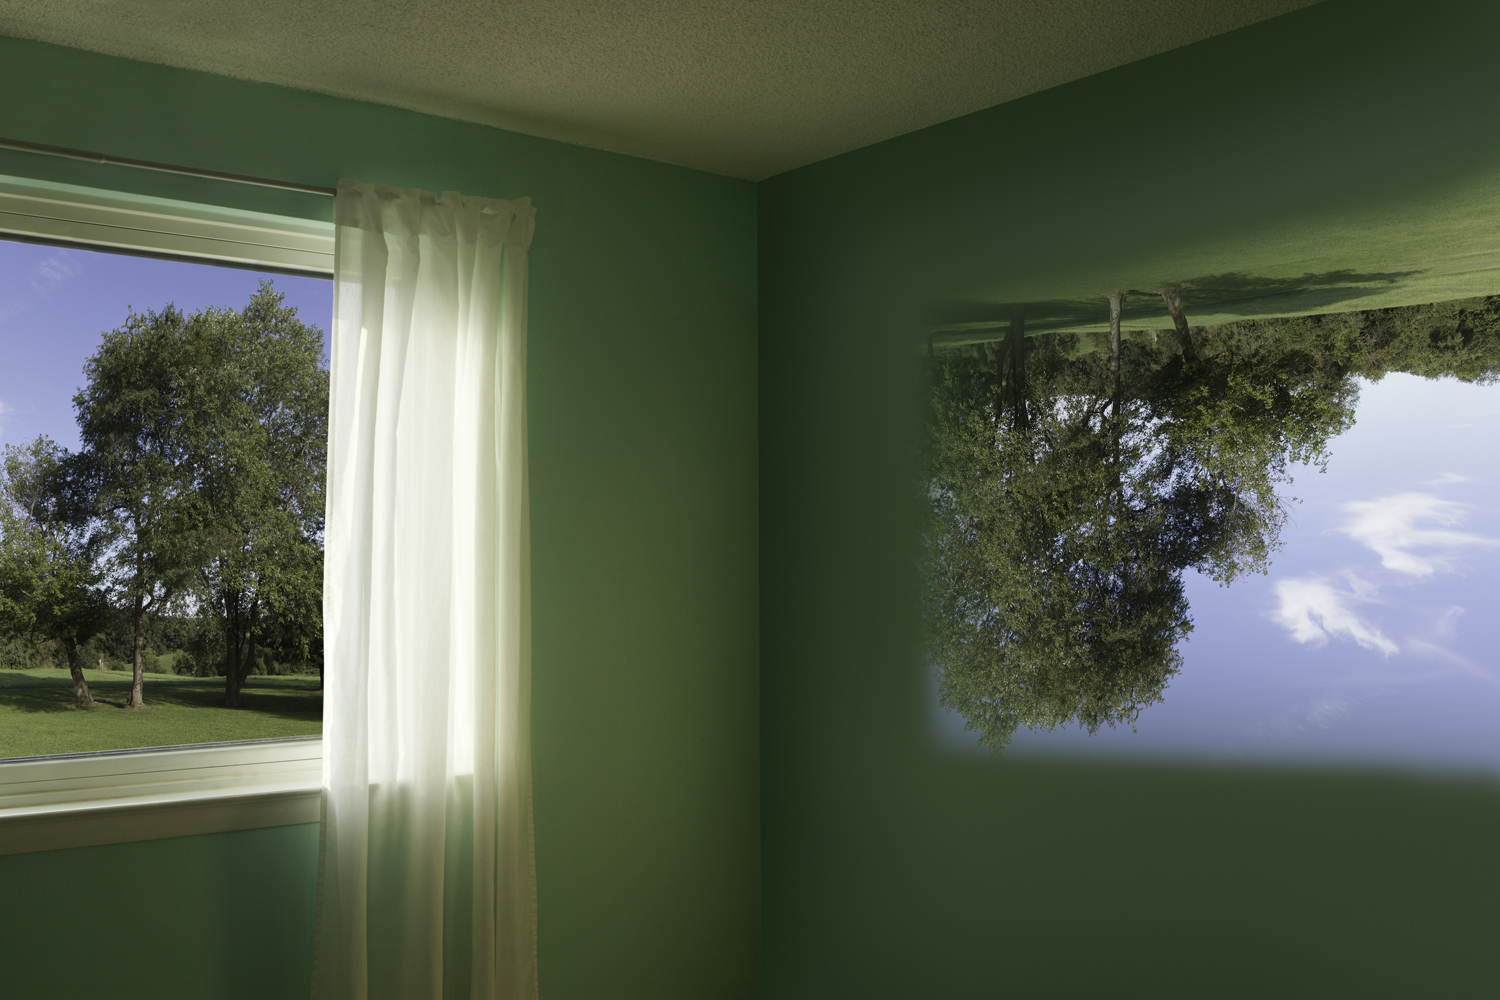 KEITH SHARP  ROOM AS CAMERA, 2018  ARCHIVAL PIGMENT PRINT